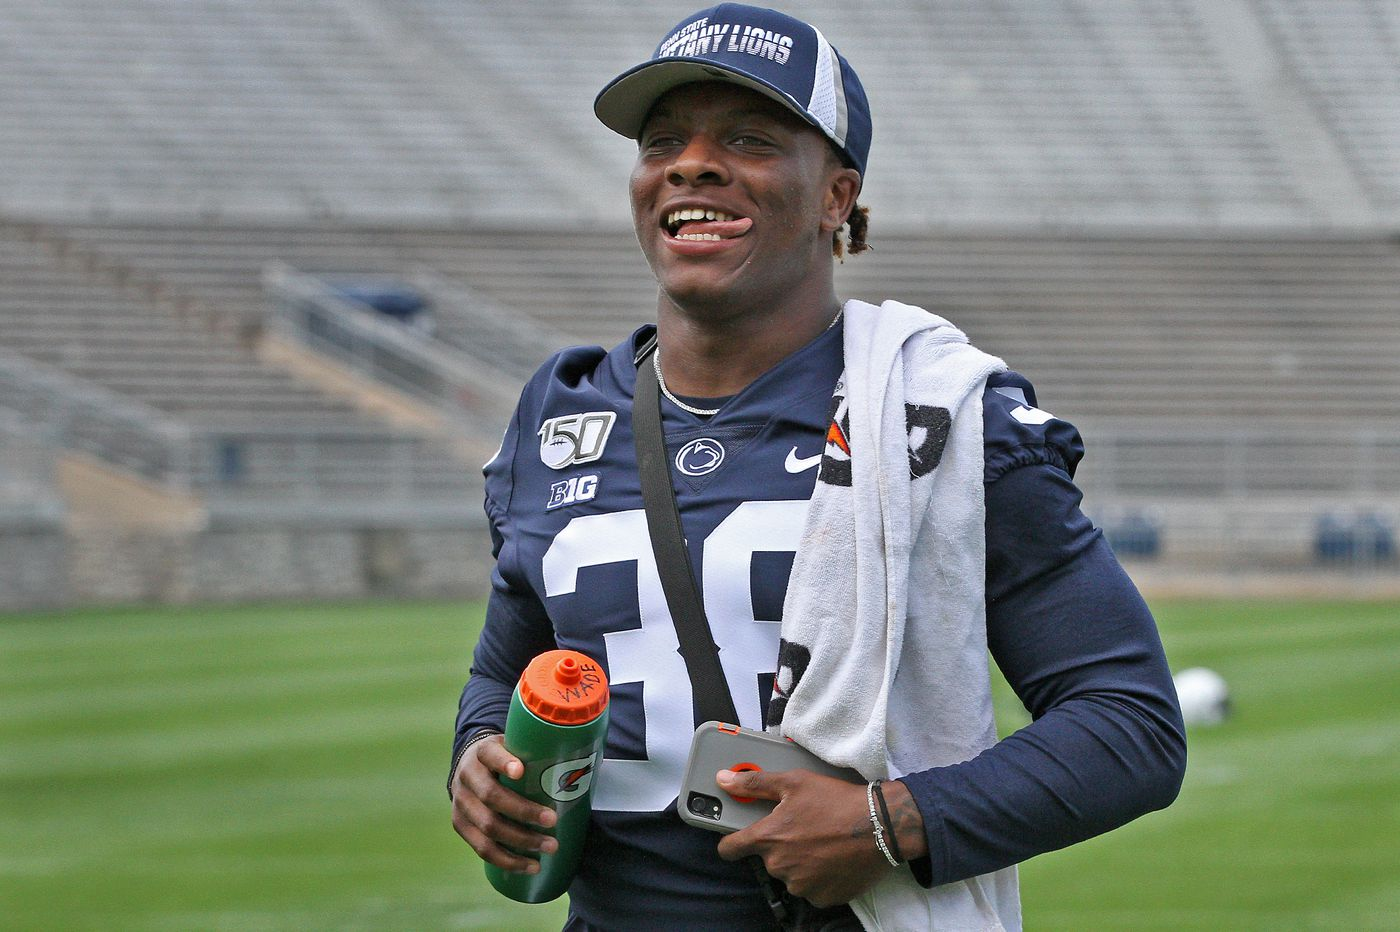 Penn State football training camp features a fierce competition for a starting safety spot